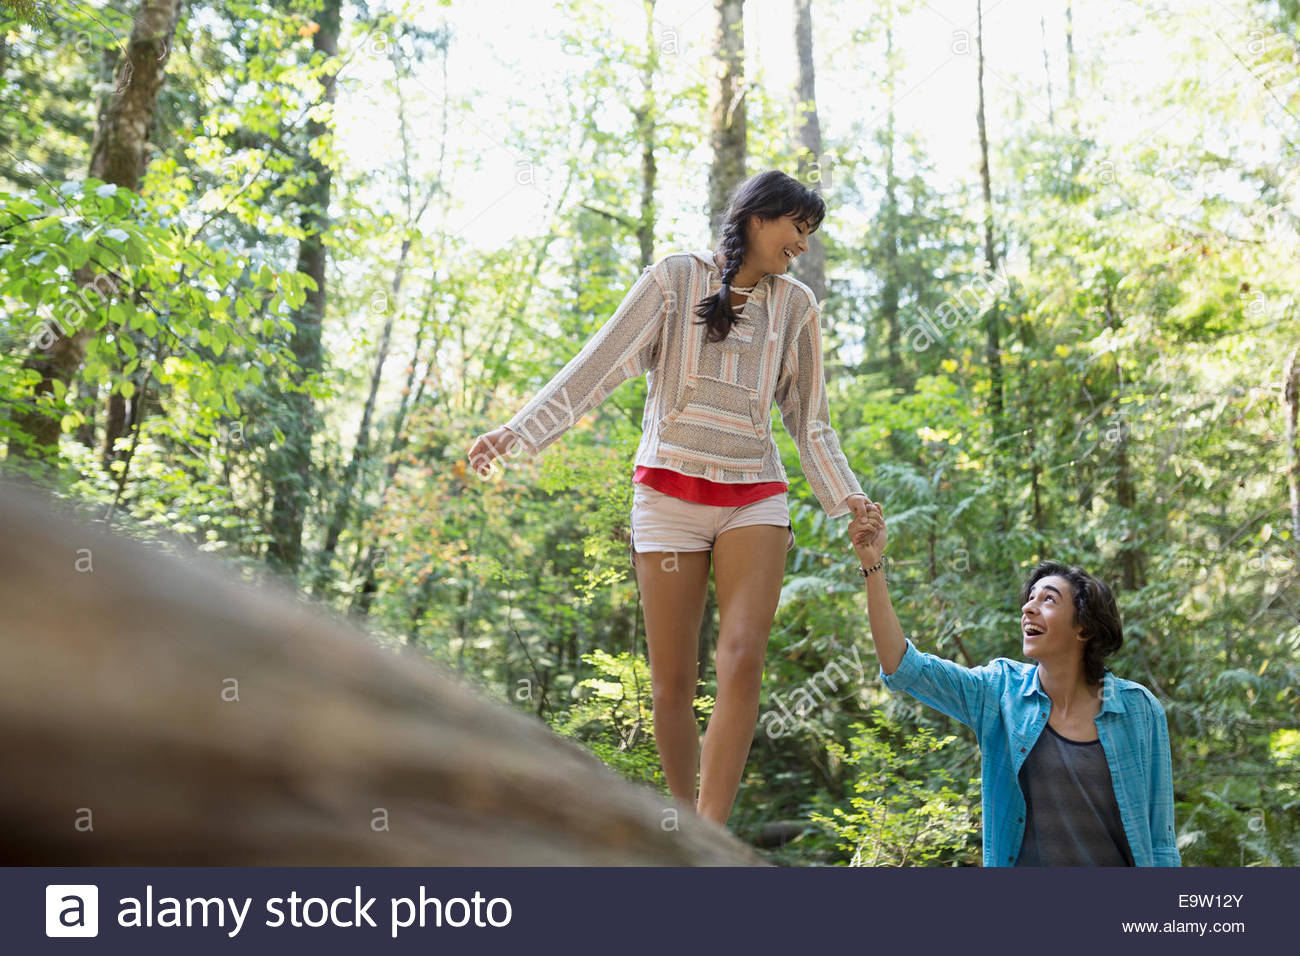 Couple holding hands in woods - Stock Image